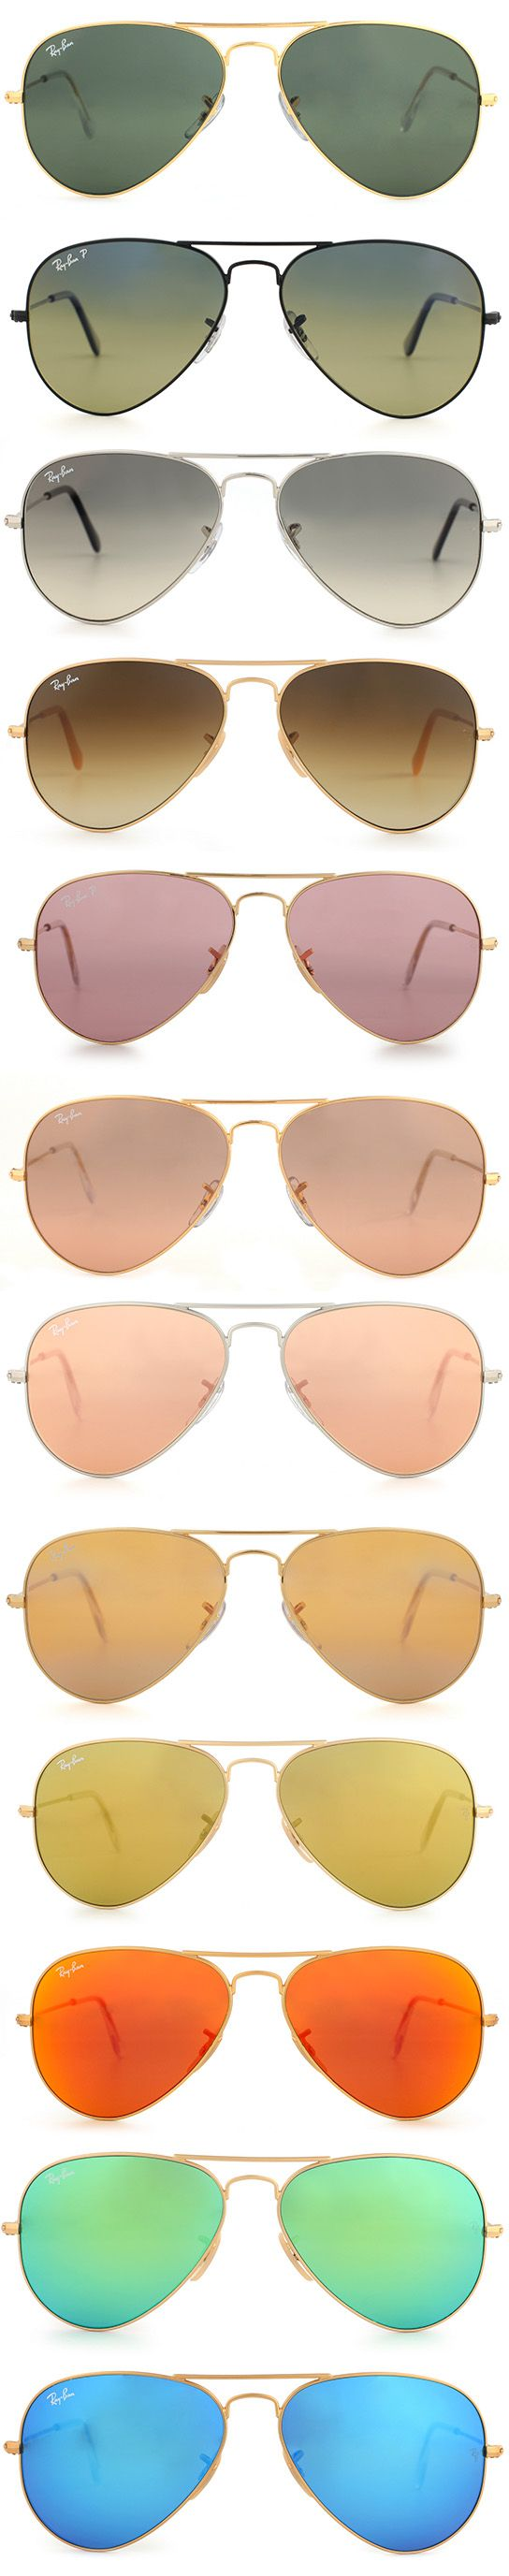 eb79dc6038501 Ray-Ban RB3025 - Large Metal Aviator Sunglasses